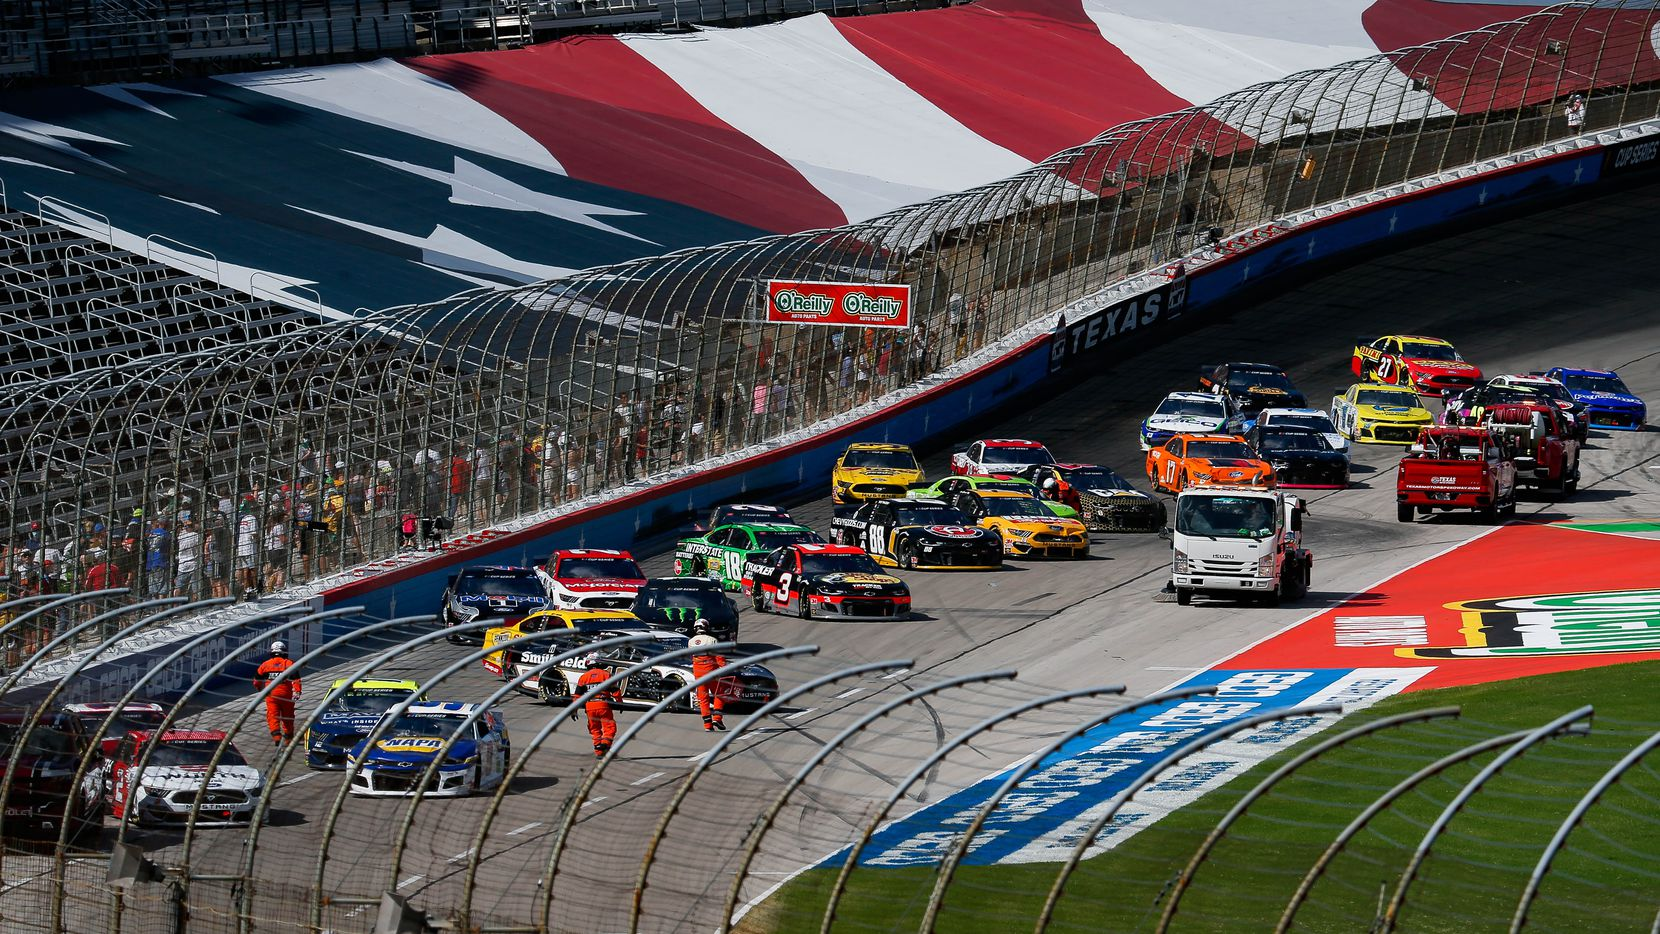 Fans line the fence to get photos of the stalled cars during the NASCAR Cup Series O'Reilly Auto Parts 500 race on July 19, 2020 at Texas Motor Speedway in Fort Worth. The race was the first major league sporting event in Texas open to fans amid the pandemic.